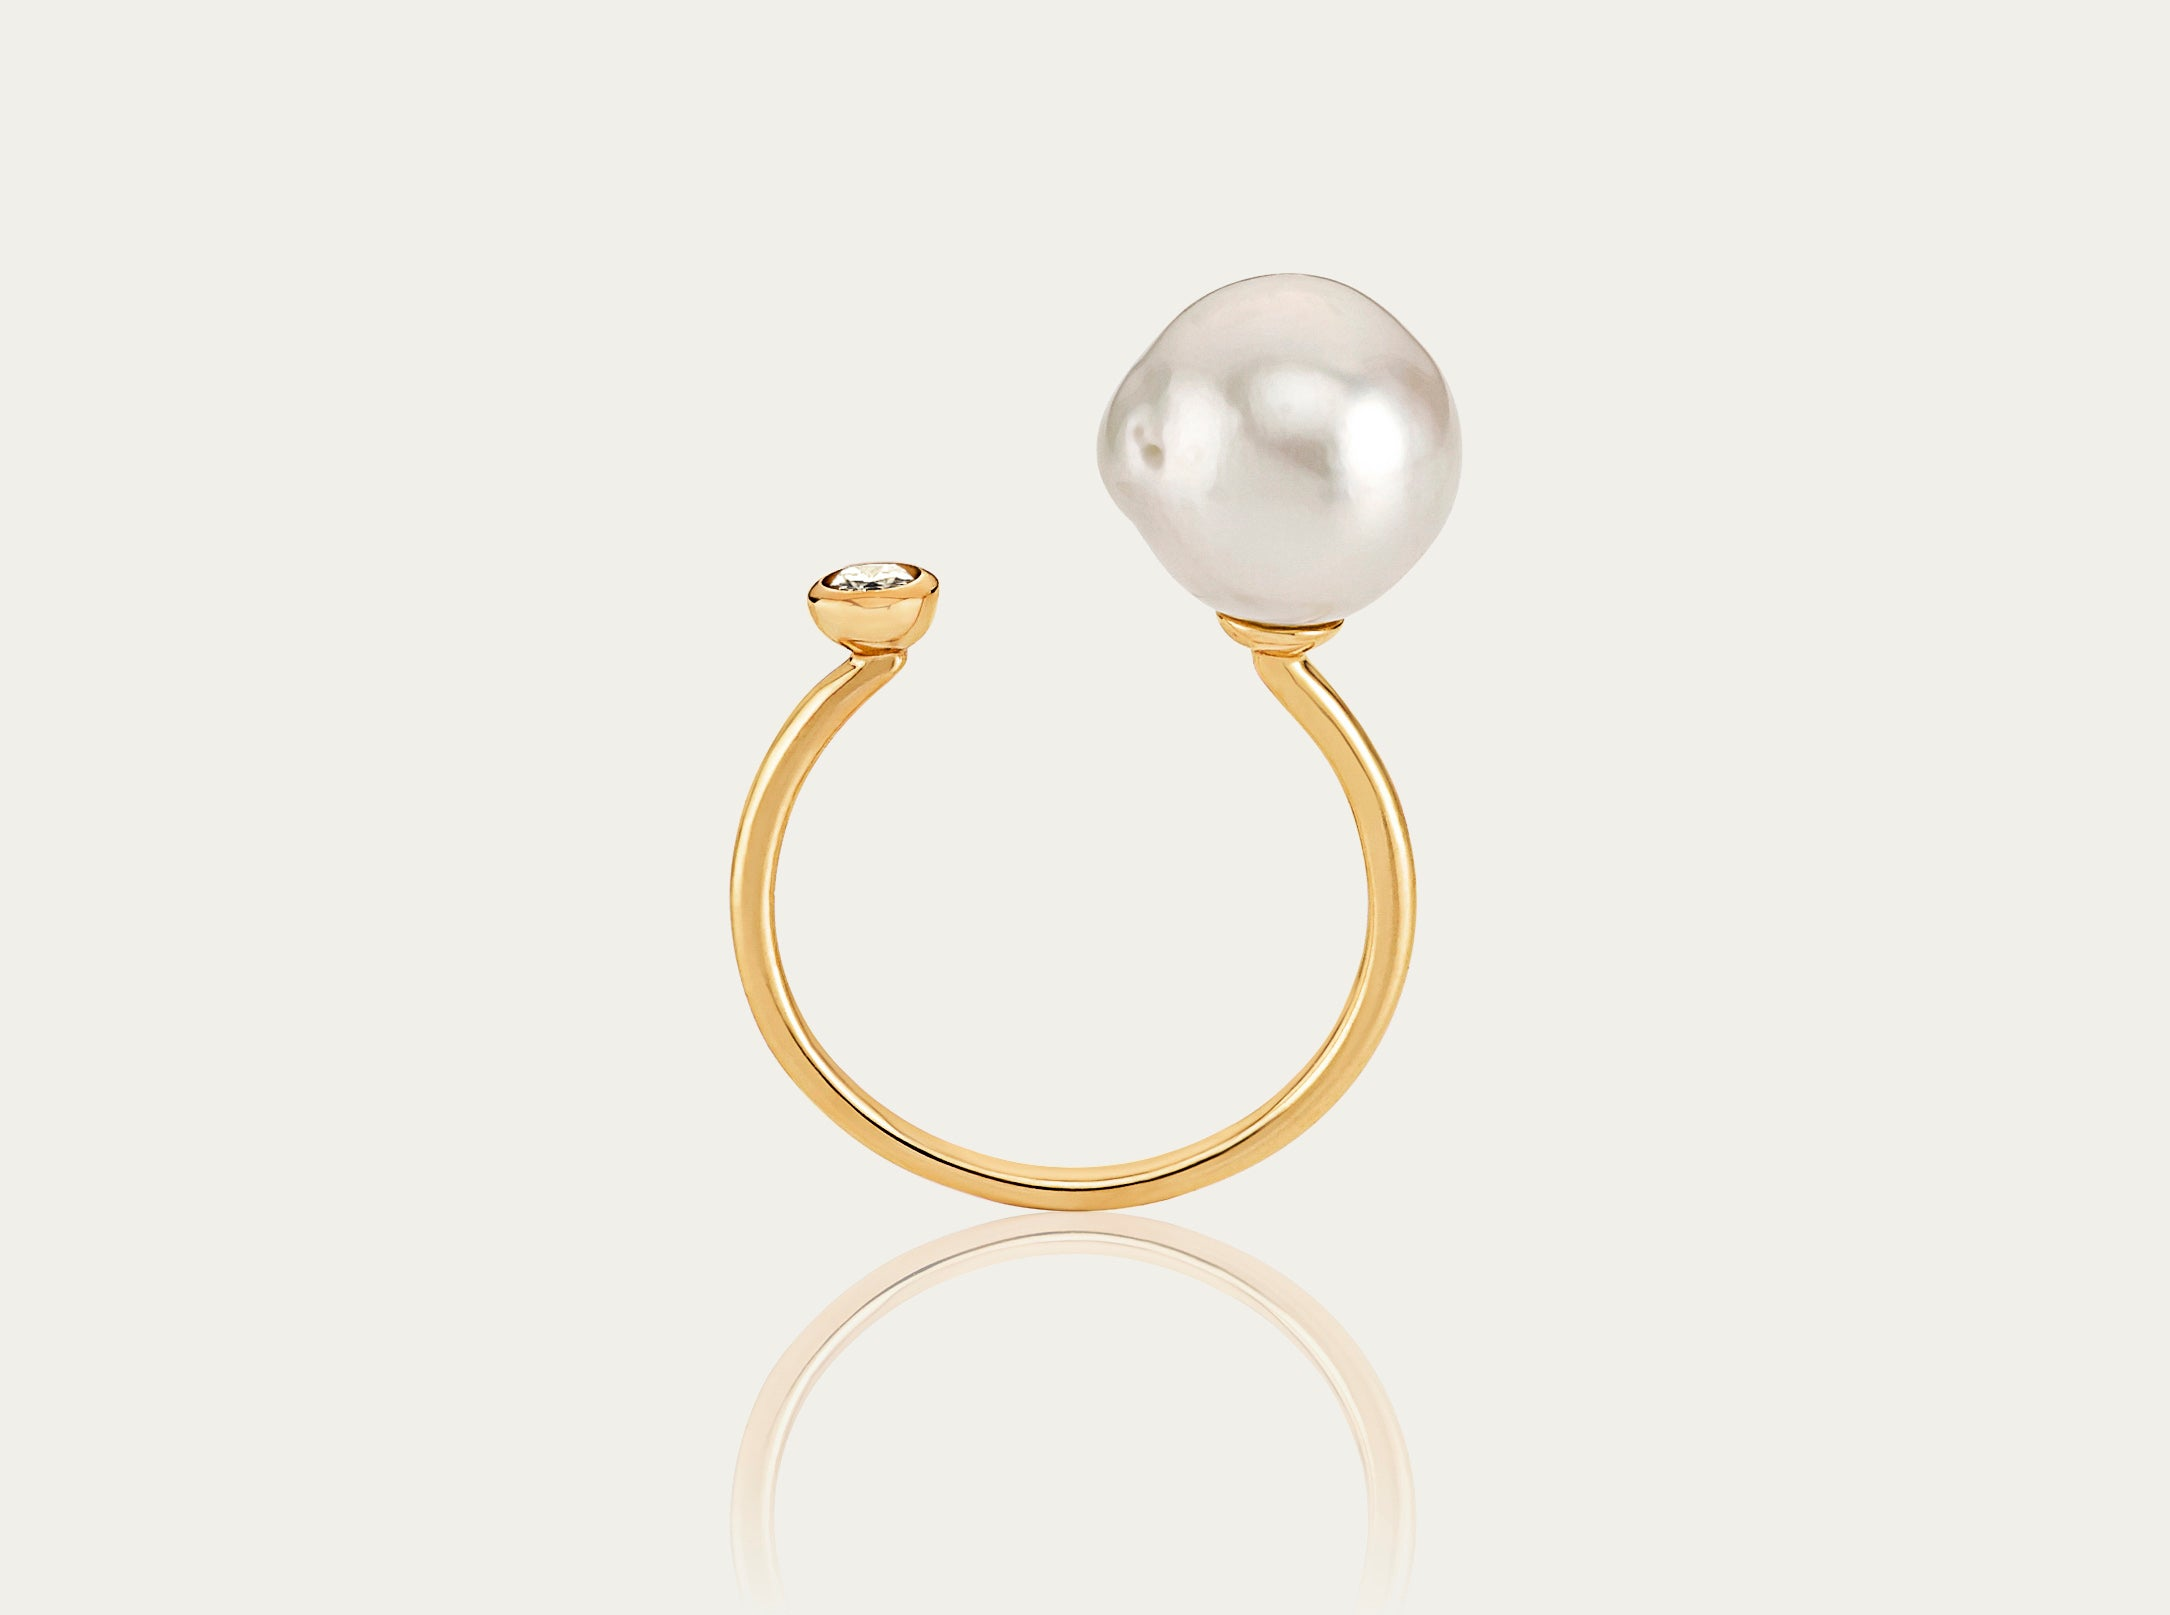 Baroque Pearl with Diamond Ring 10k yellow gold